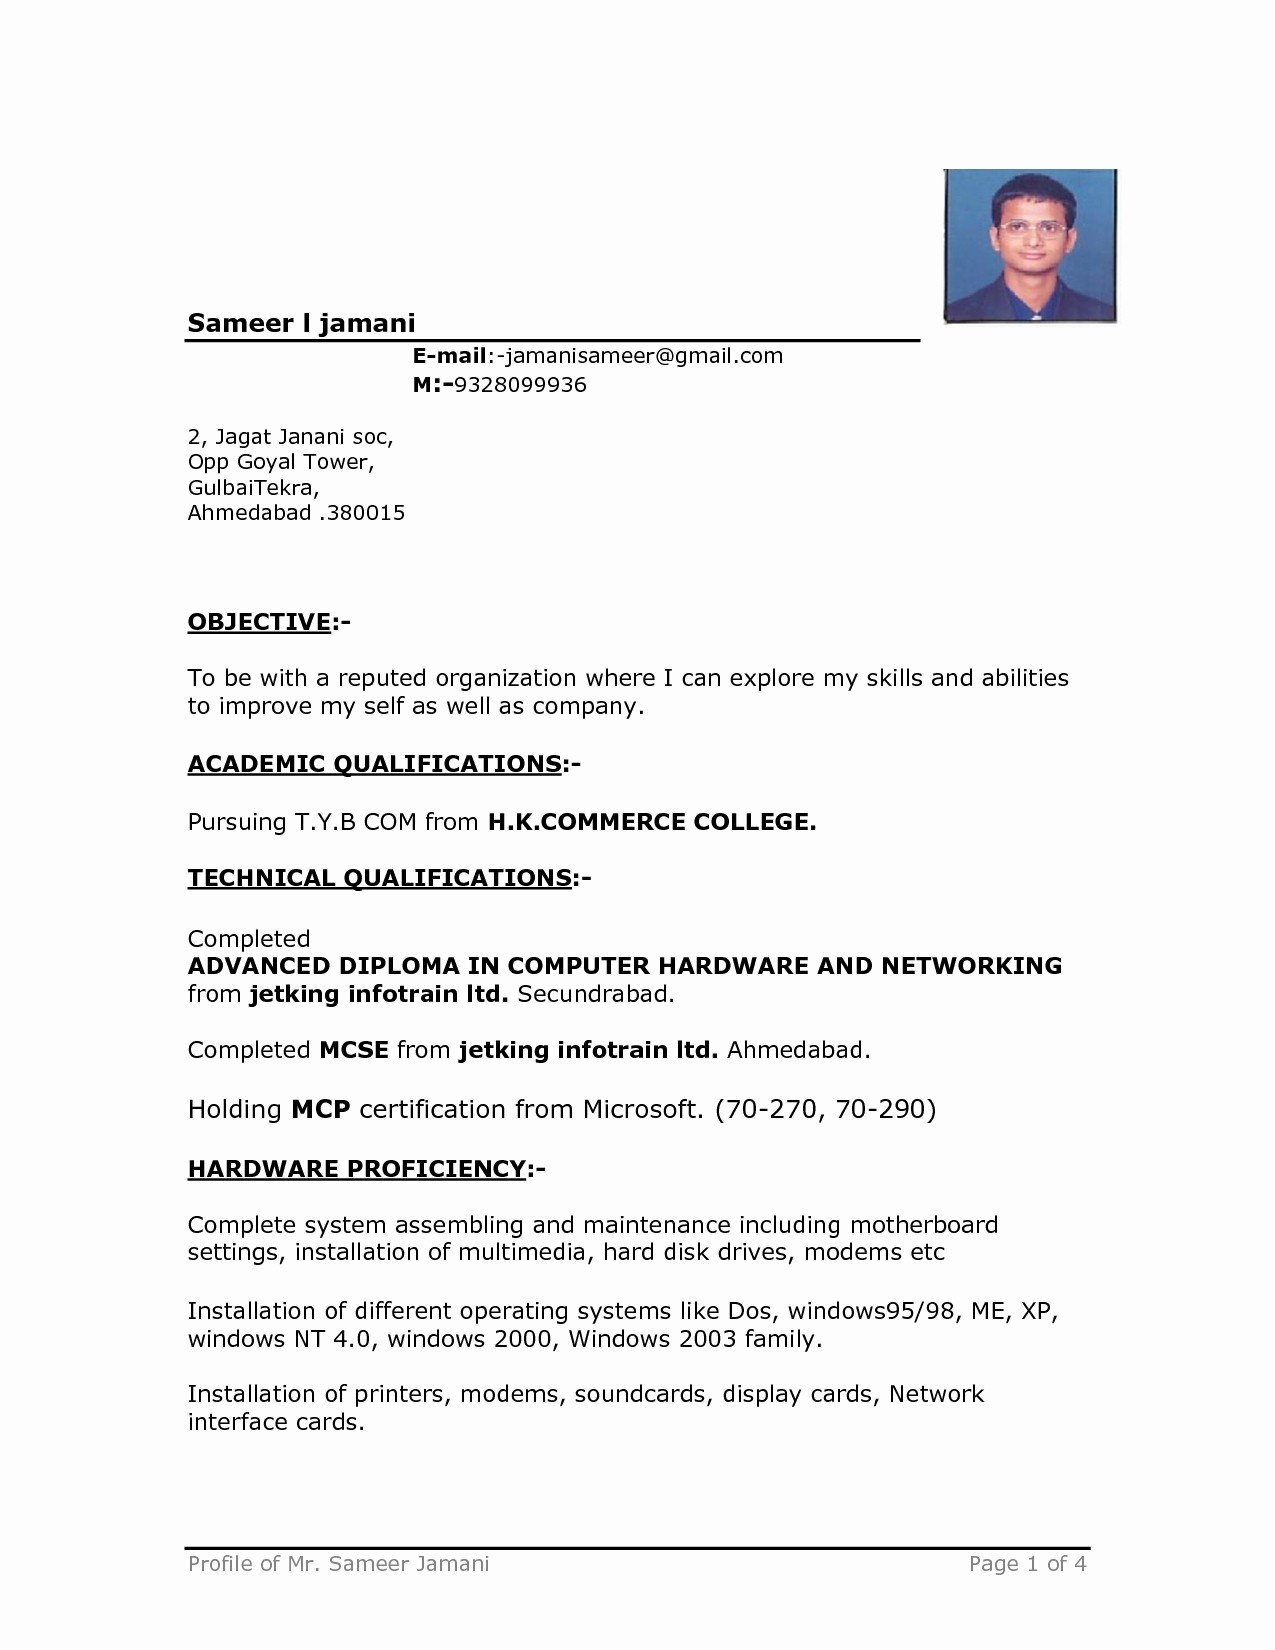 Microsoft Word Free Resume Templates New Resume Template Microsoft Word 2017